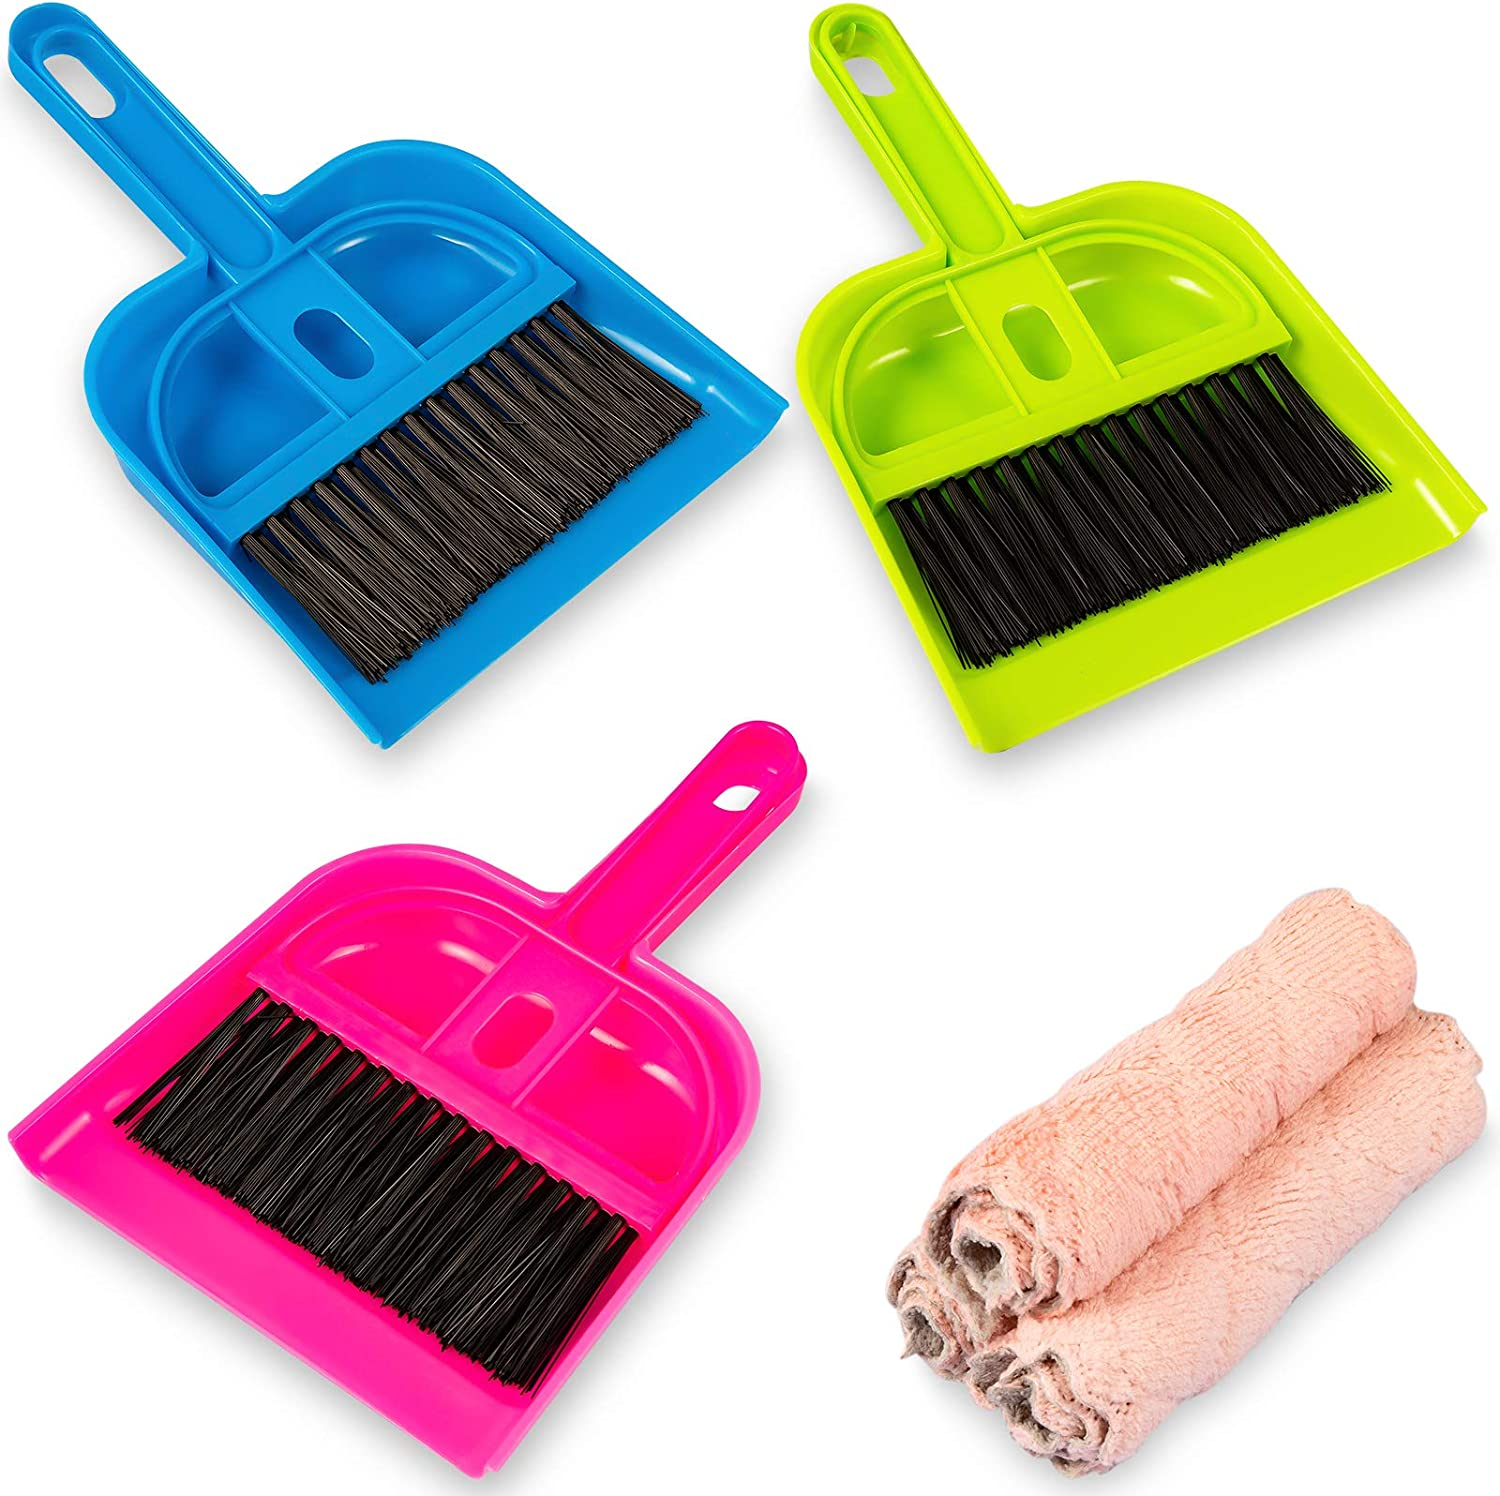 NEW before selling ☆ 3 Pack Mini Dustpan and Broom Cloths Cleaning with 3pcs Max 57% OFF Set